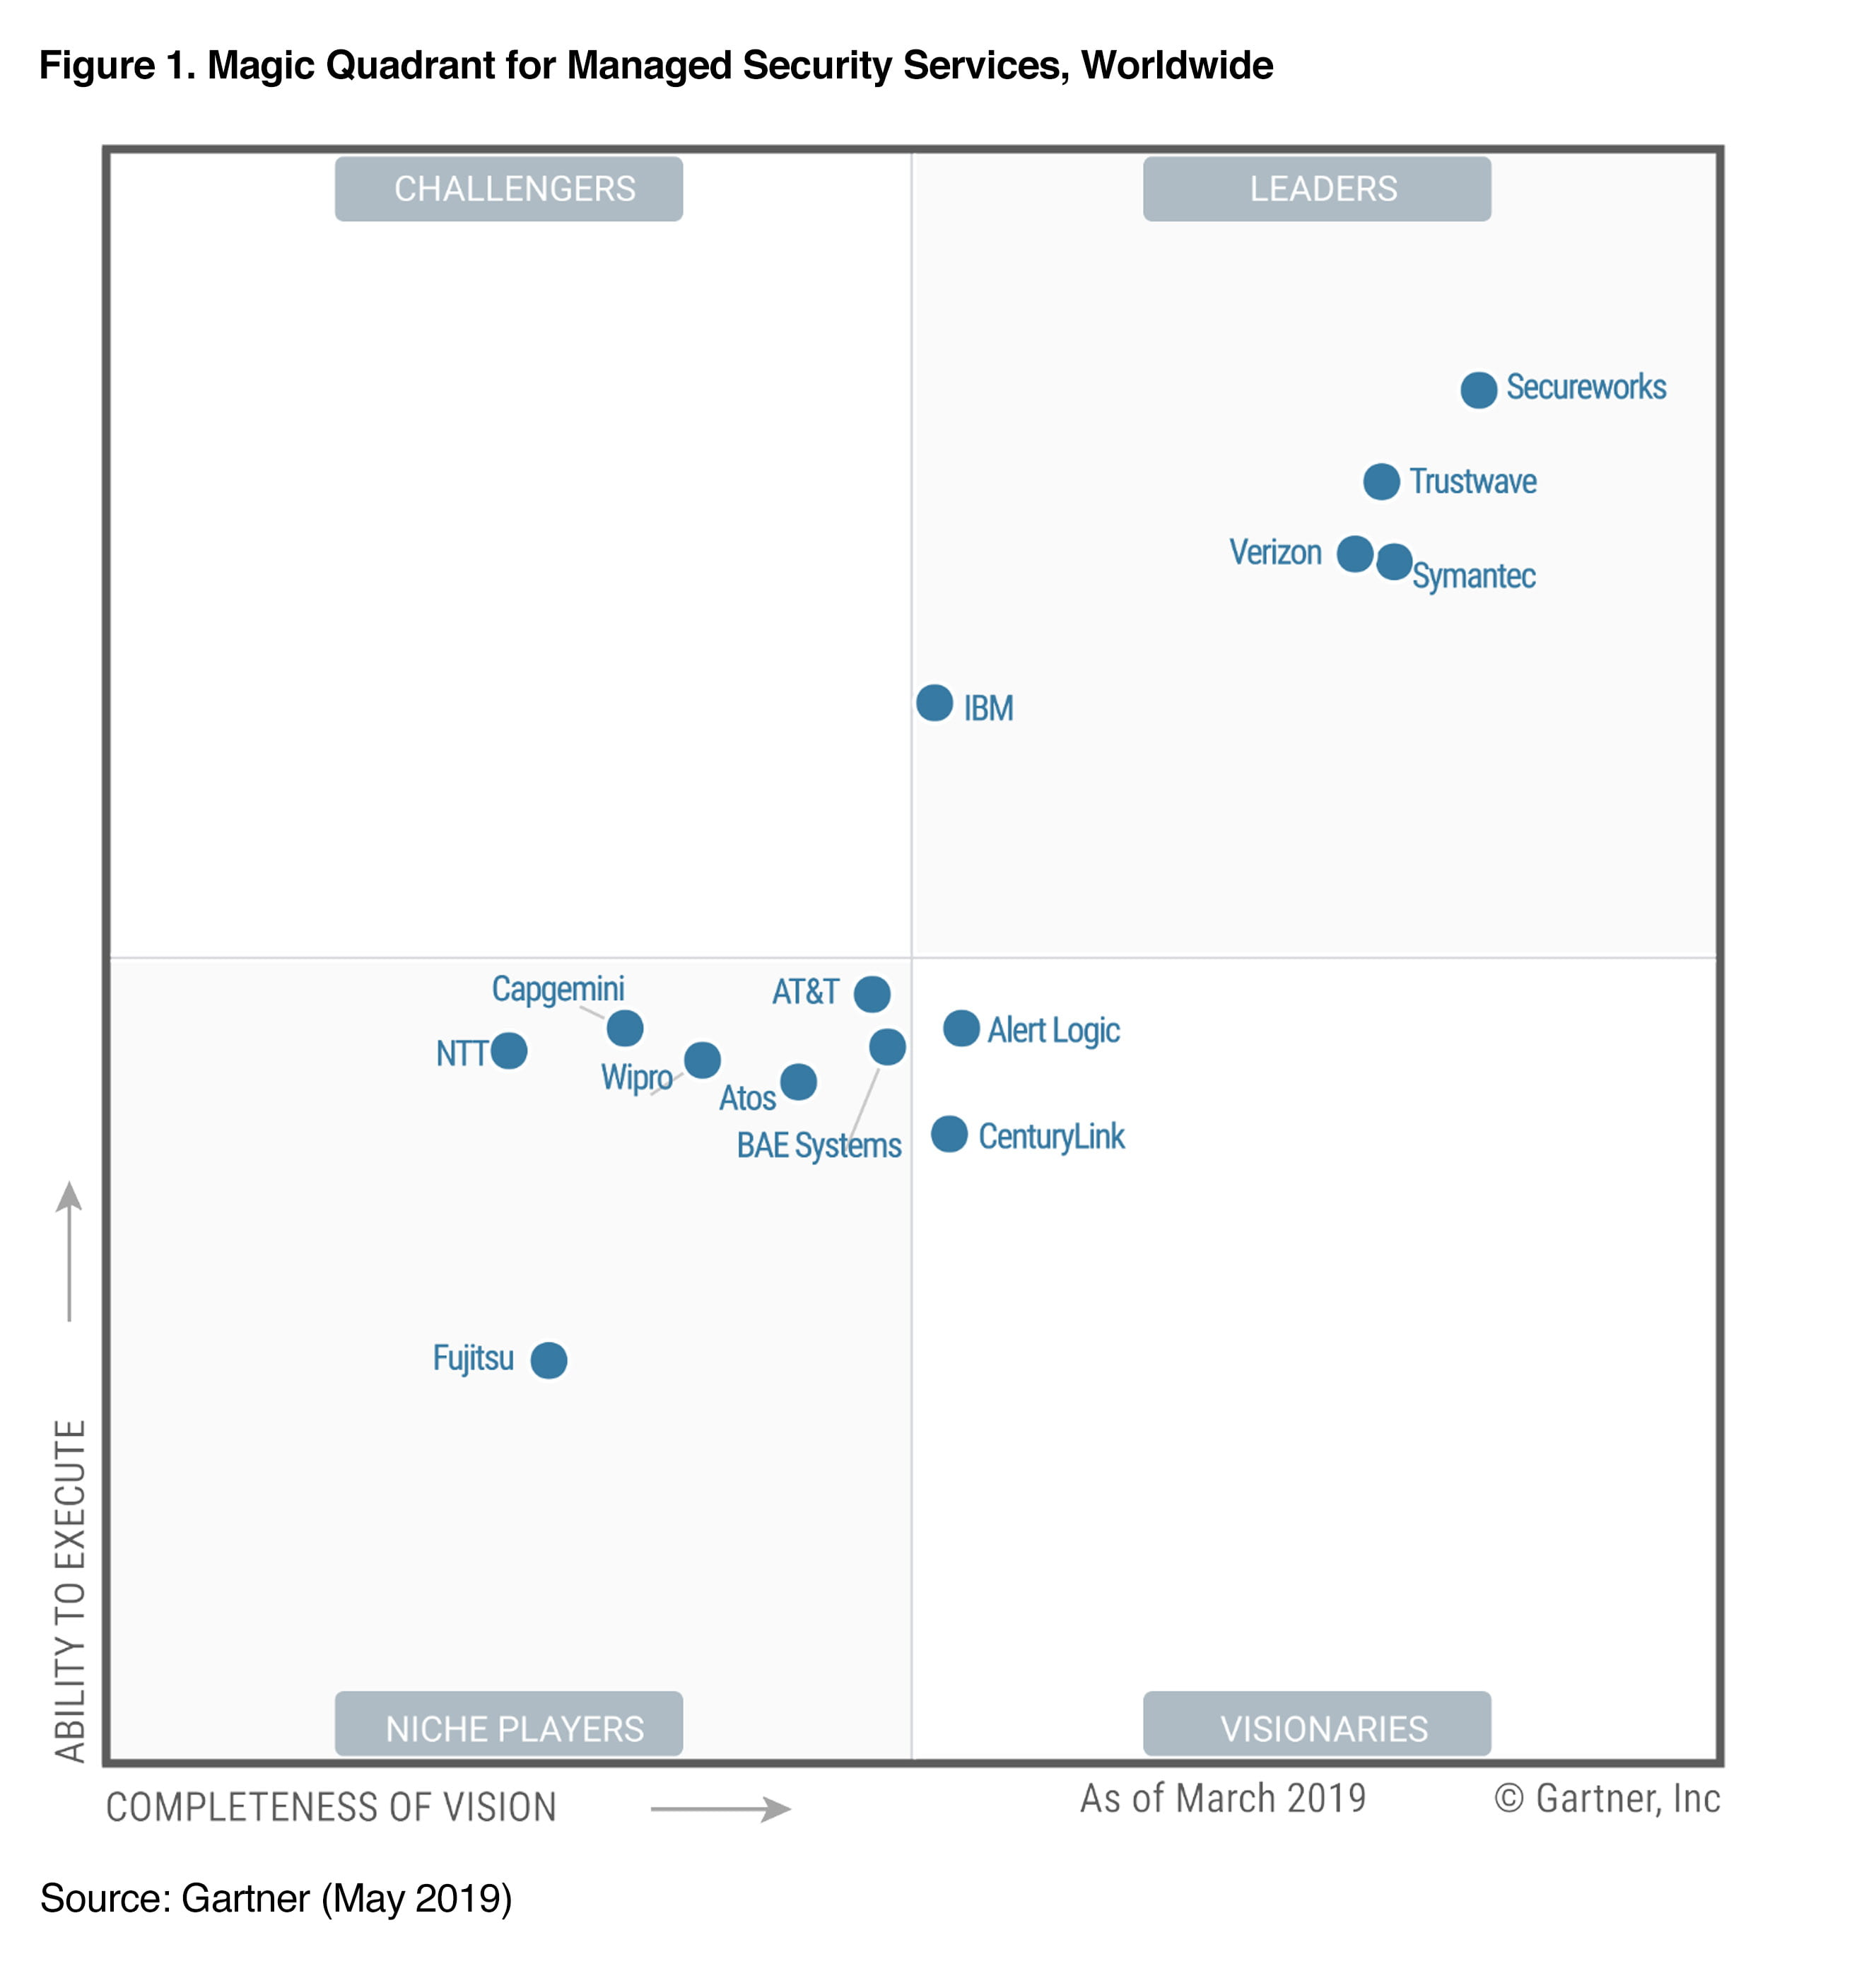 Secureworks is placed furthest in Completeness of Vision and Ability to Execute out of all vendors in the 2019 Magic Quadrant for Managed Security Services, Worldwide.